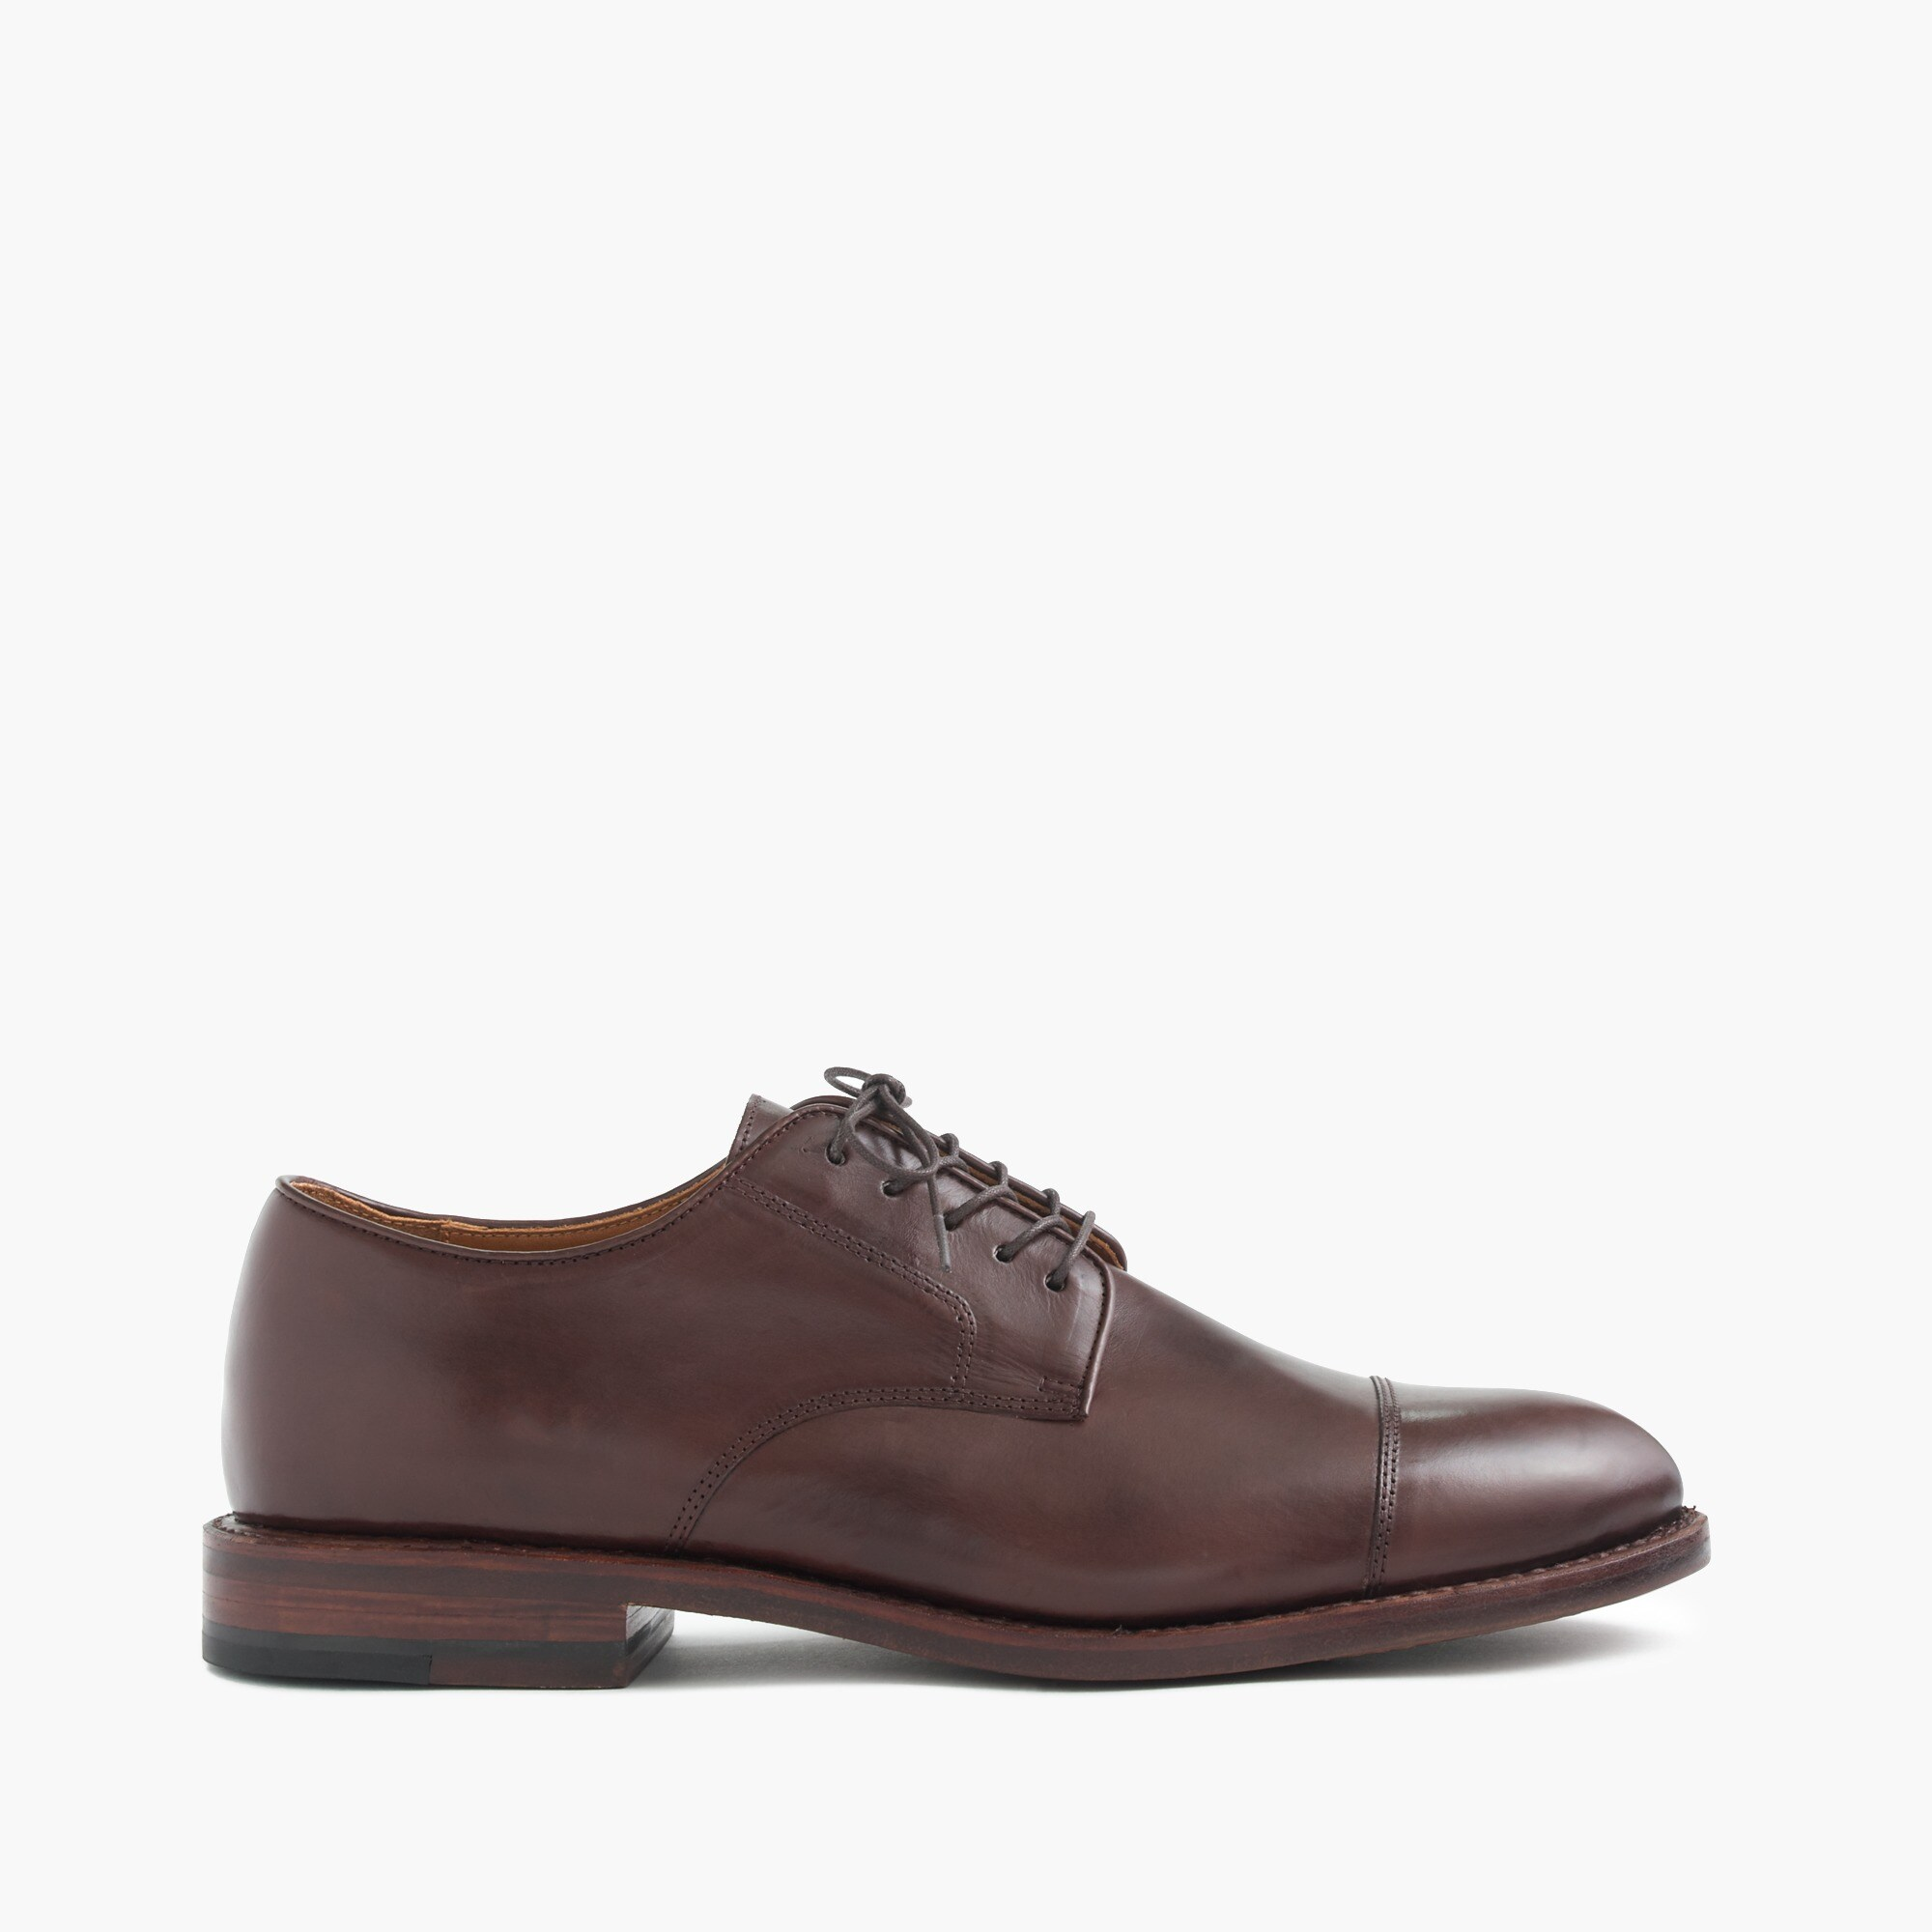 ludlow balmoral cap-toe shoes : men's shoes